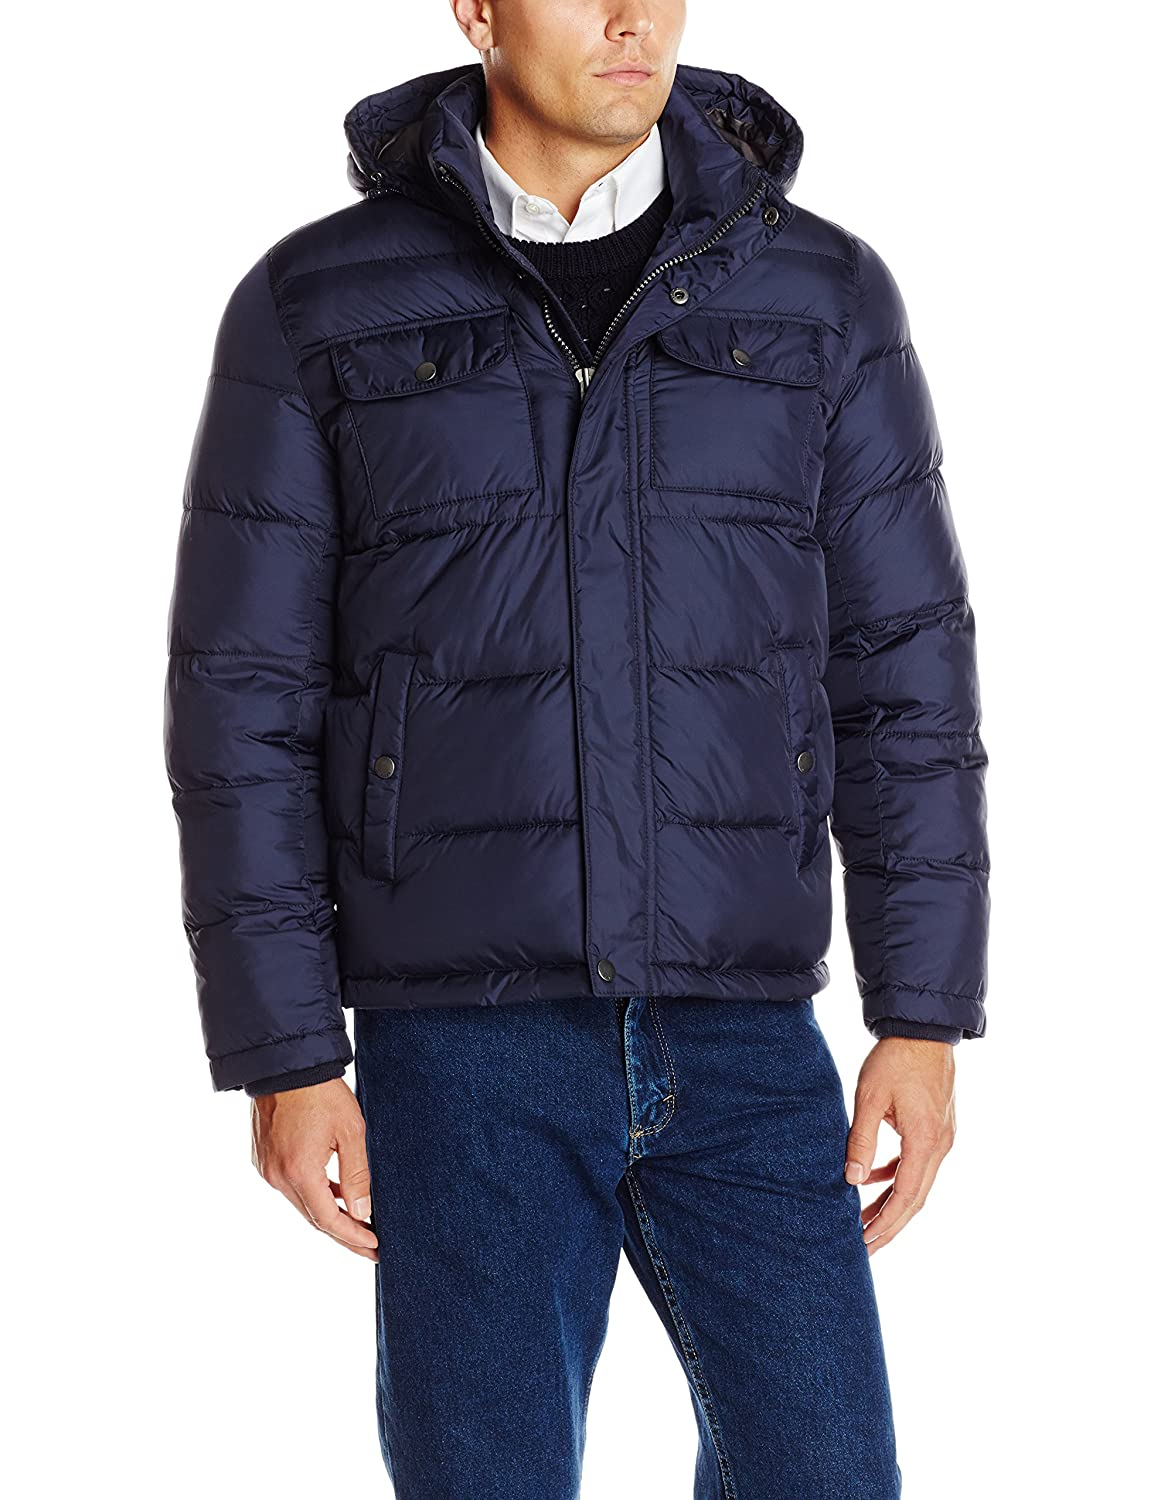 Tommy Hilfiger Men's Nylon Two Pocket Hoody Puffer Tommy Hilfiger Mens Outerwear 155AN224